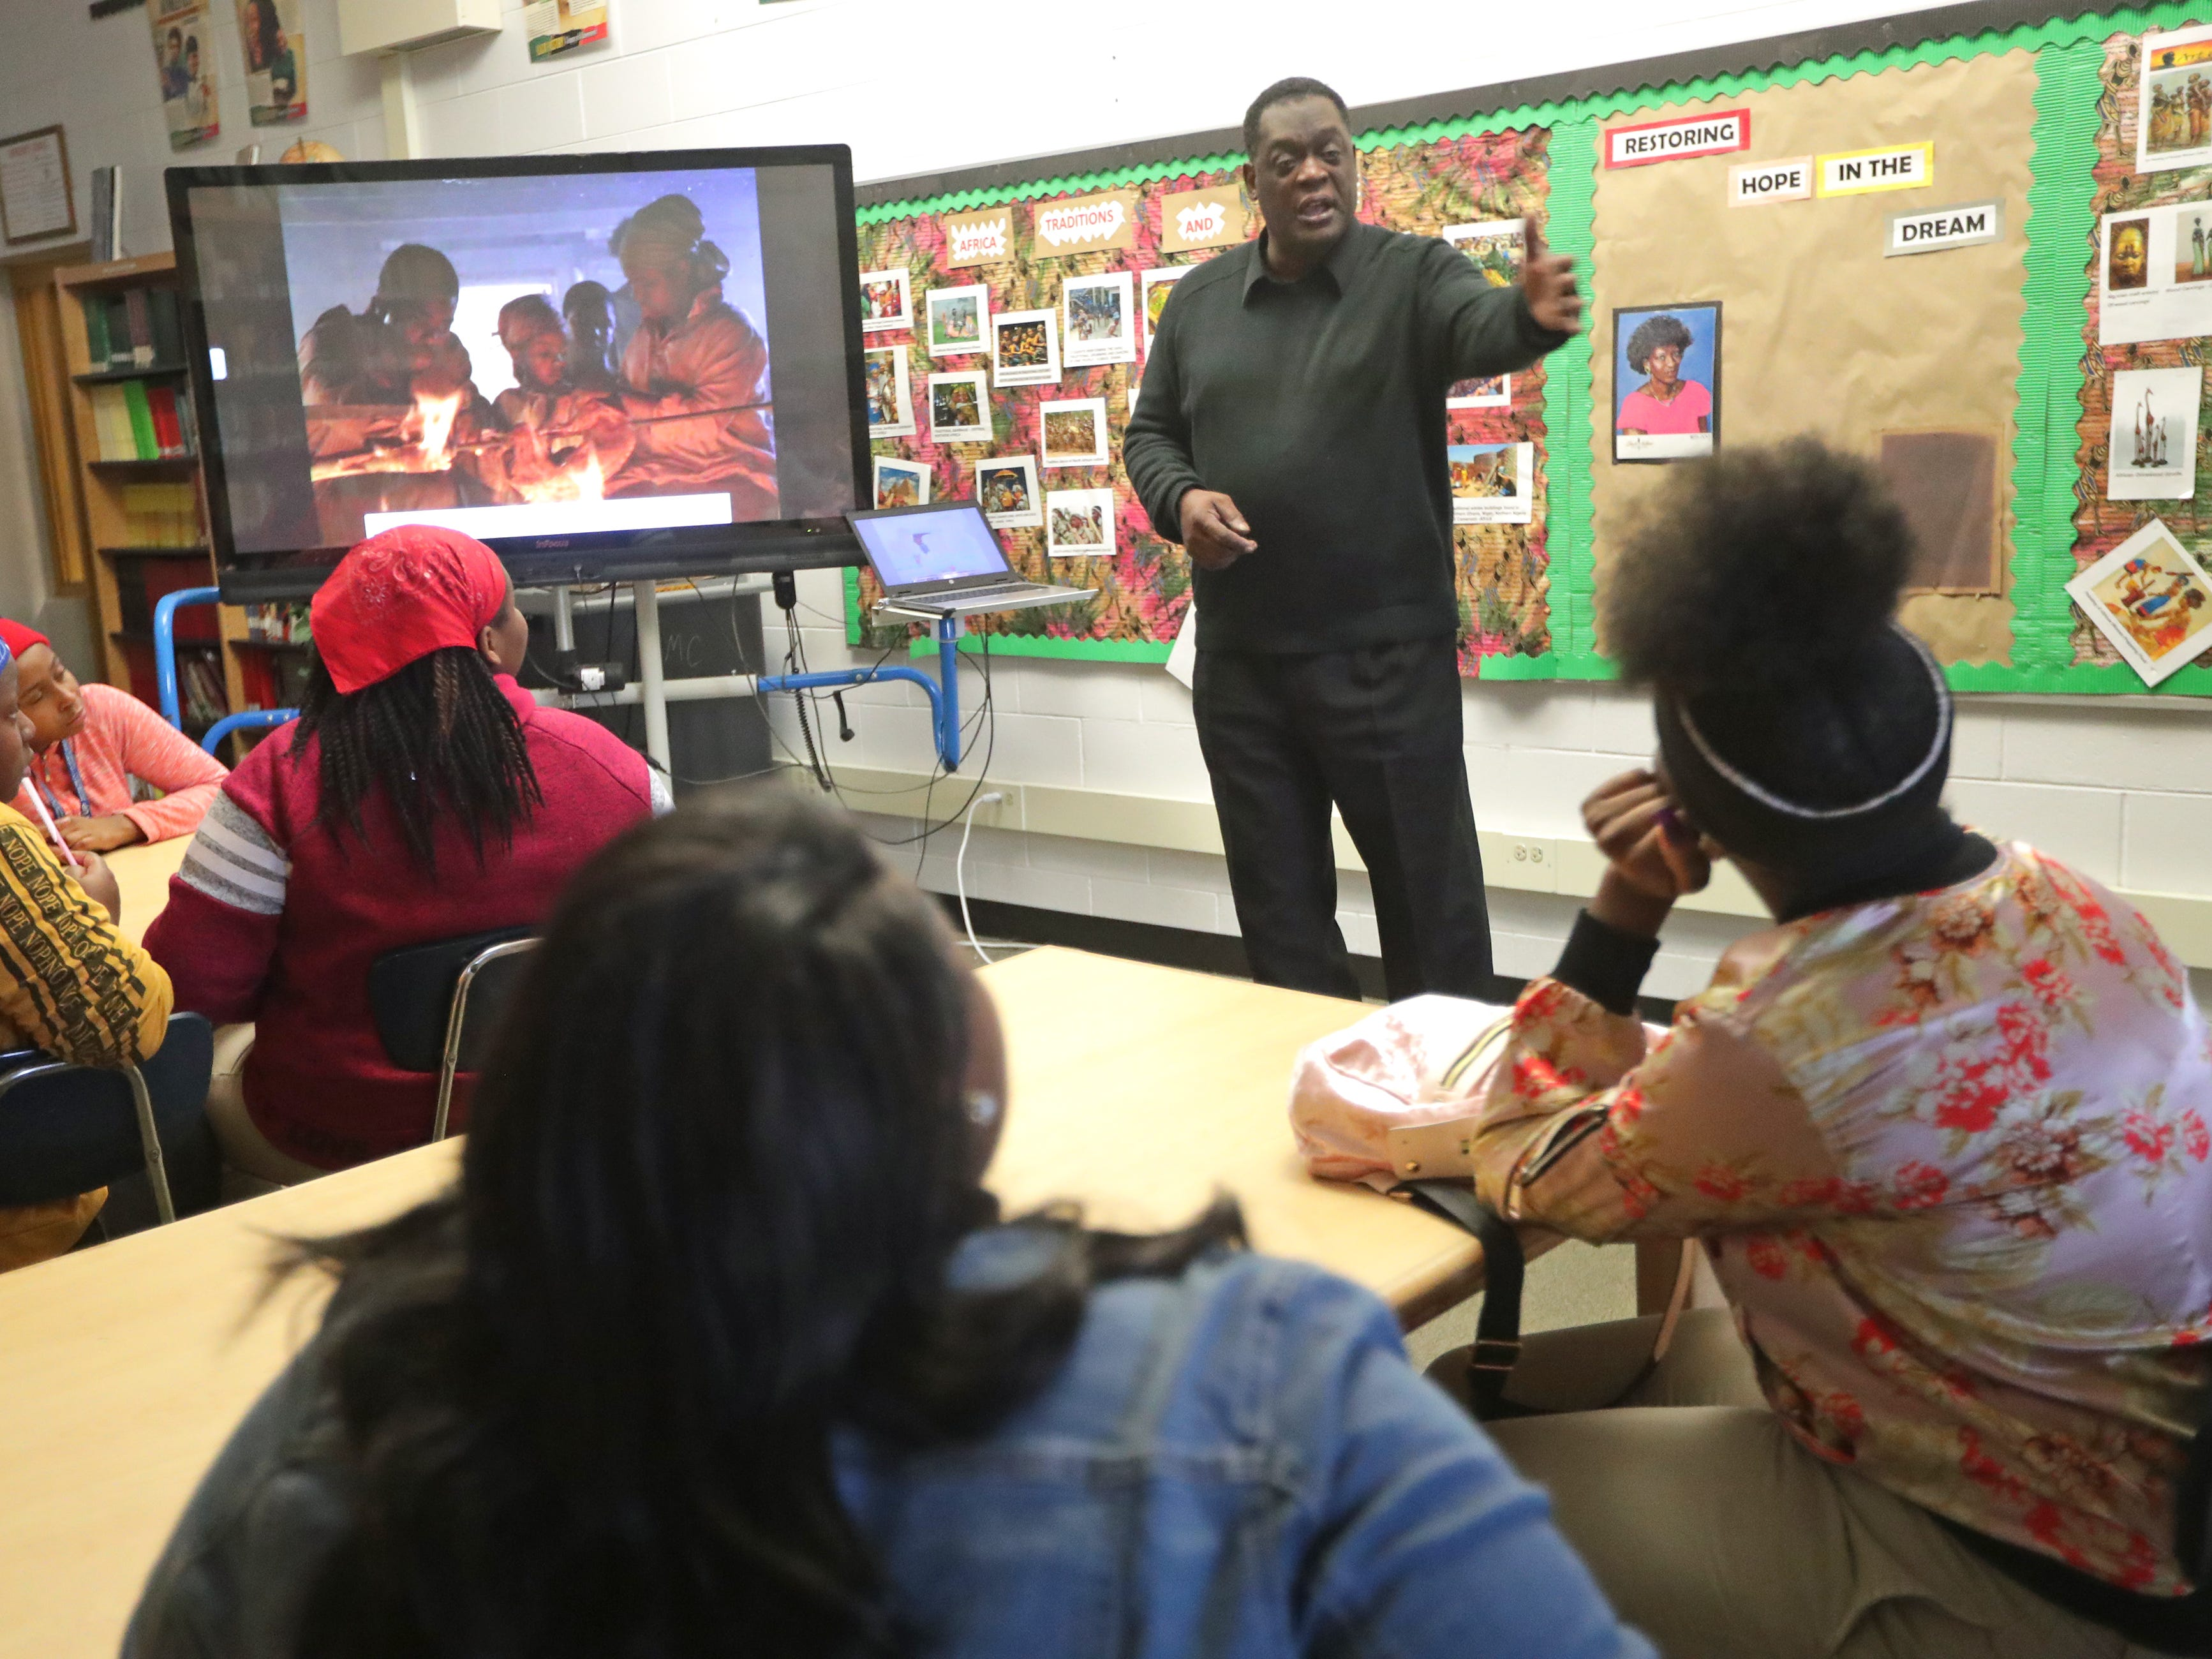 Jerome Johnson, library specialist at Dr. Martin Luther King Jr. Elementary school, speaks to eighth-graders about the history of the equal rights movement for African-Americans in the United States.